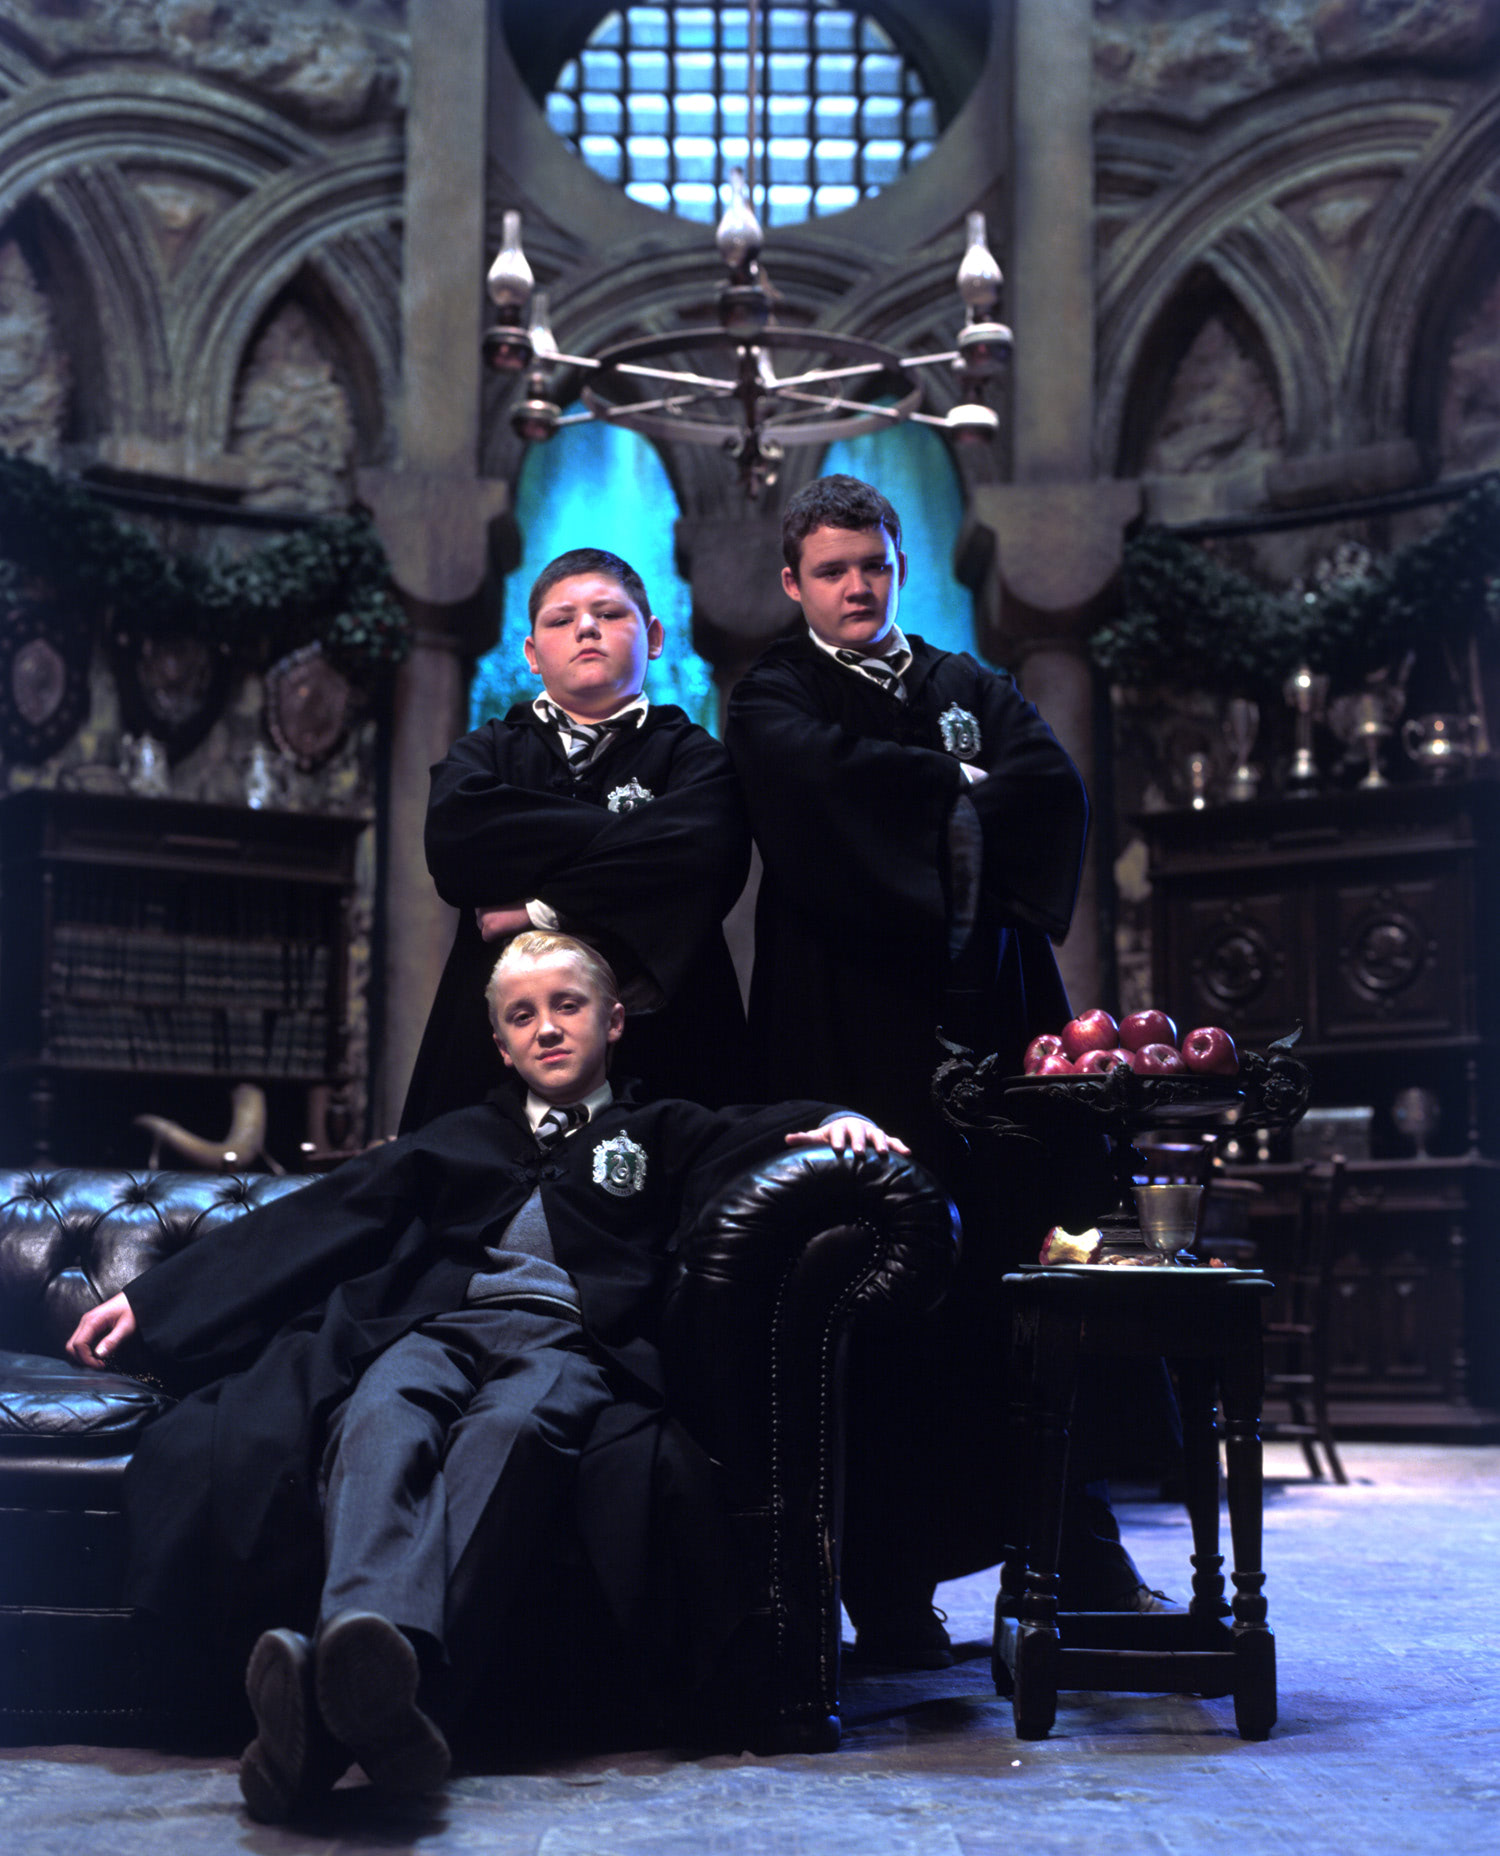 Draco, Crabbe and Goyle in the Slytherin Common Room